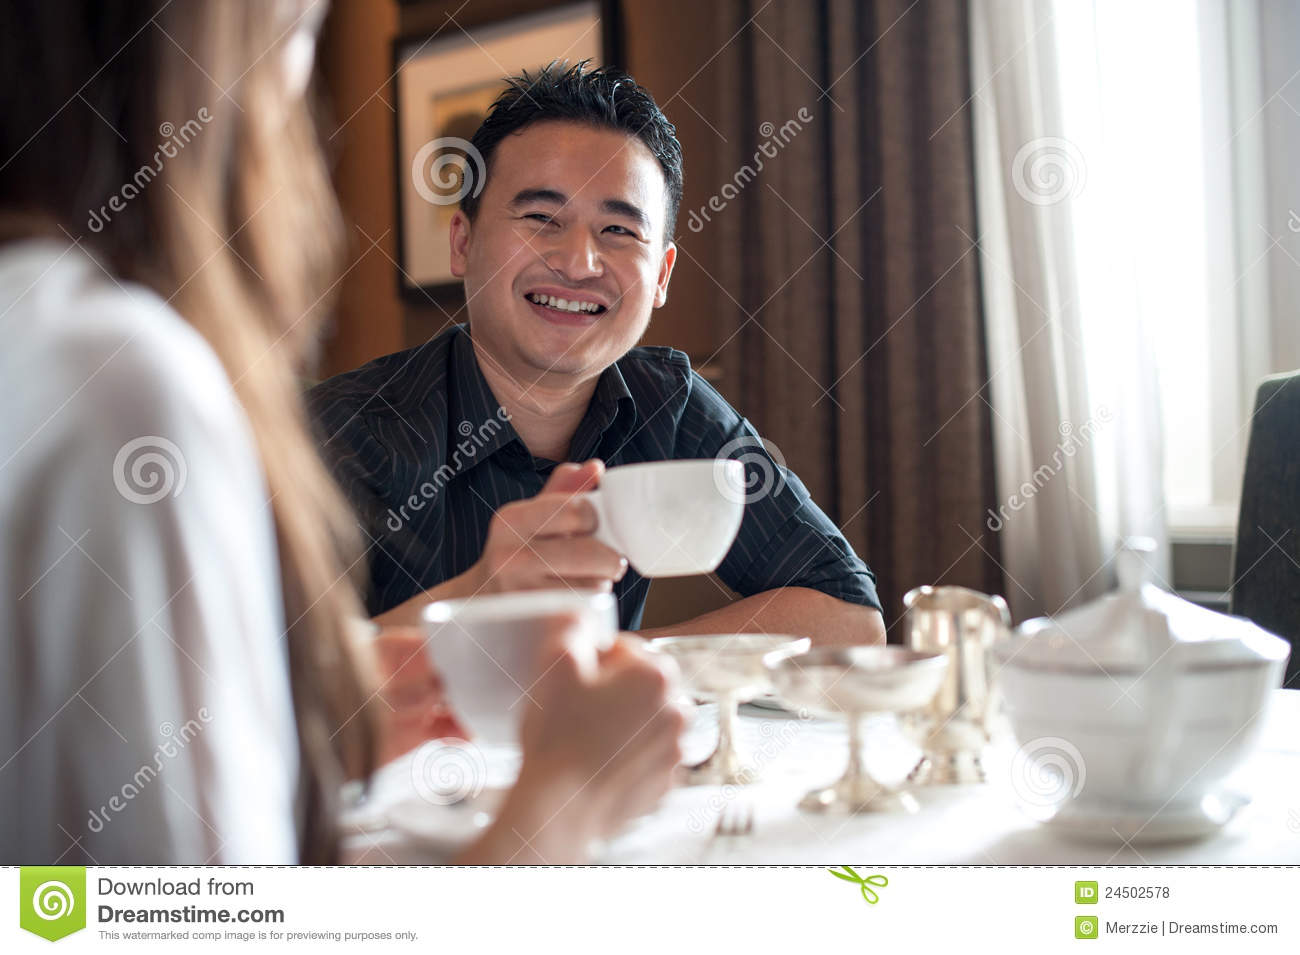 Asian Male at a Cafe